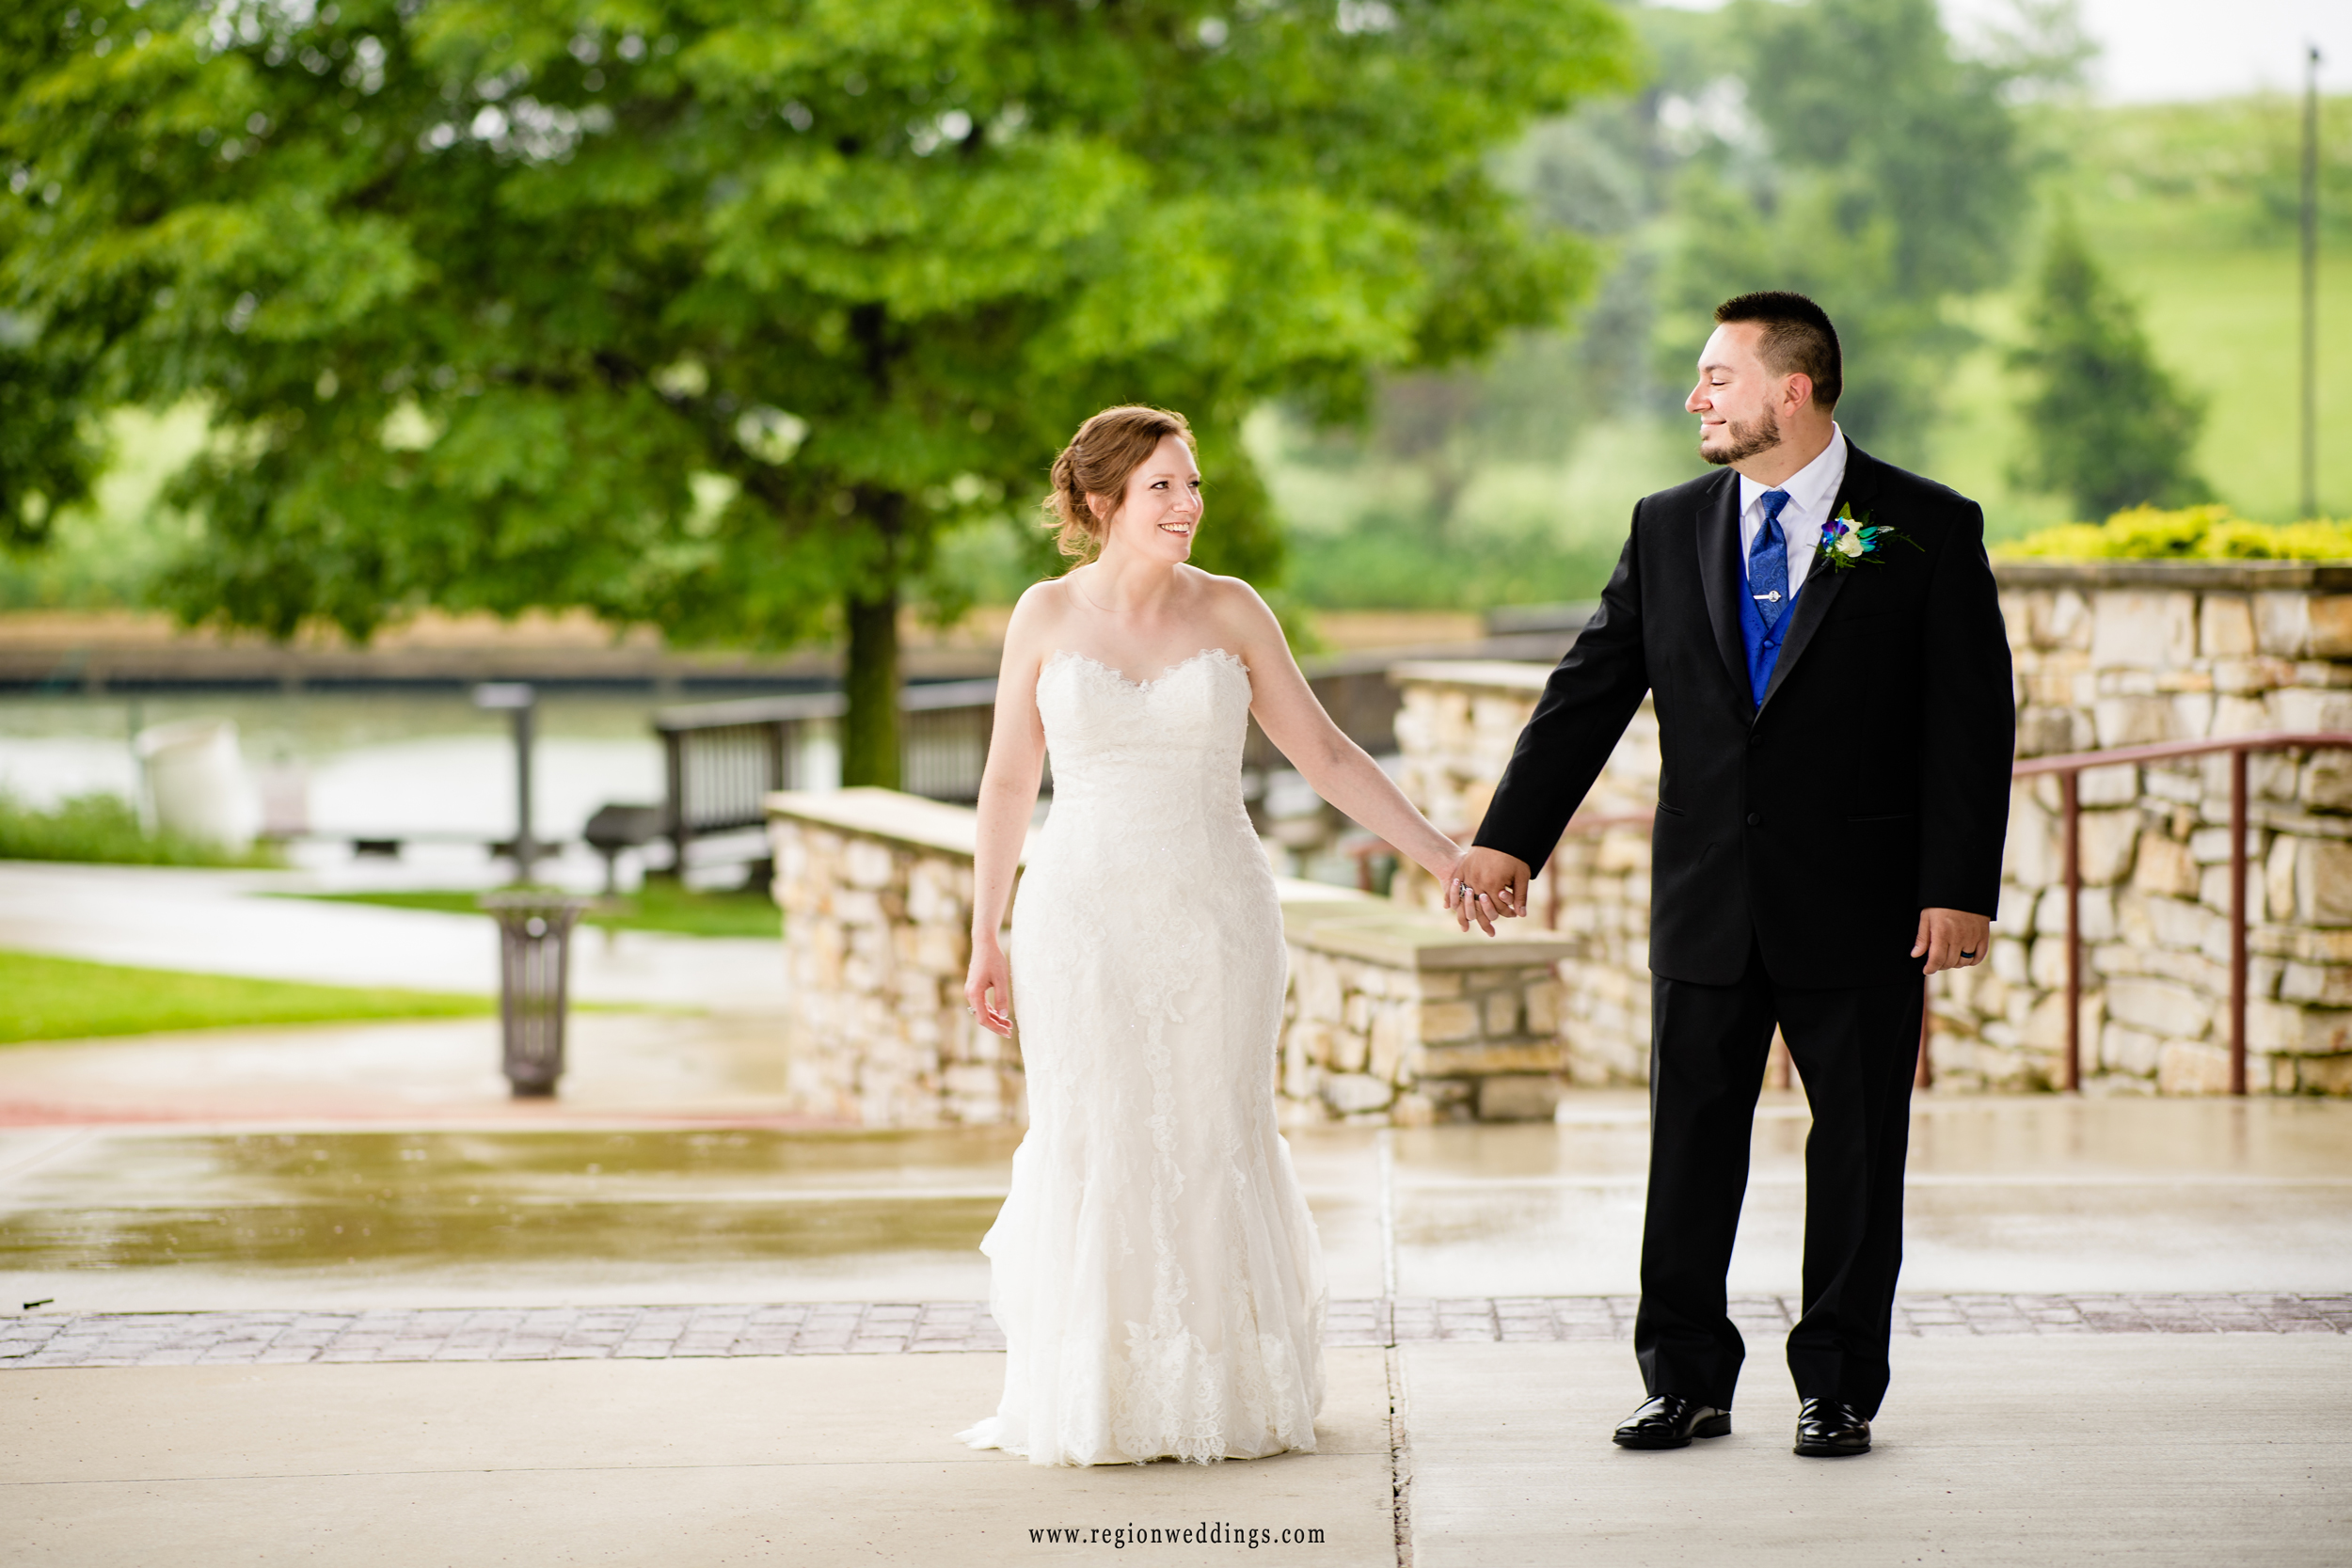 A romantic walk in the rain for the newlyweds.